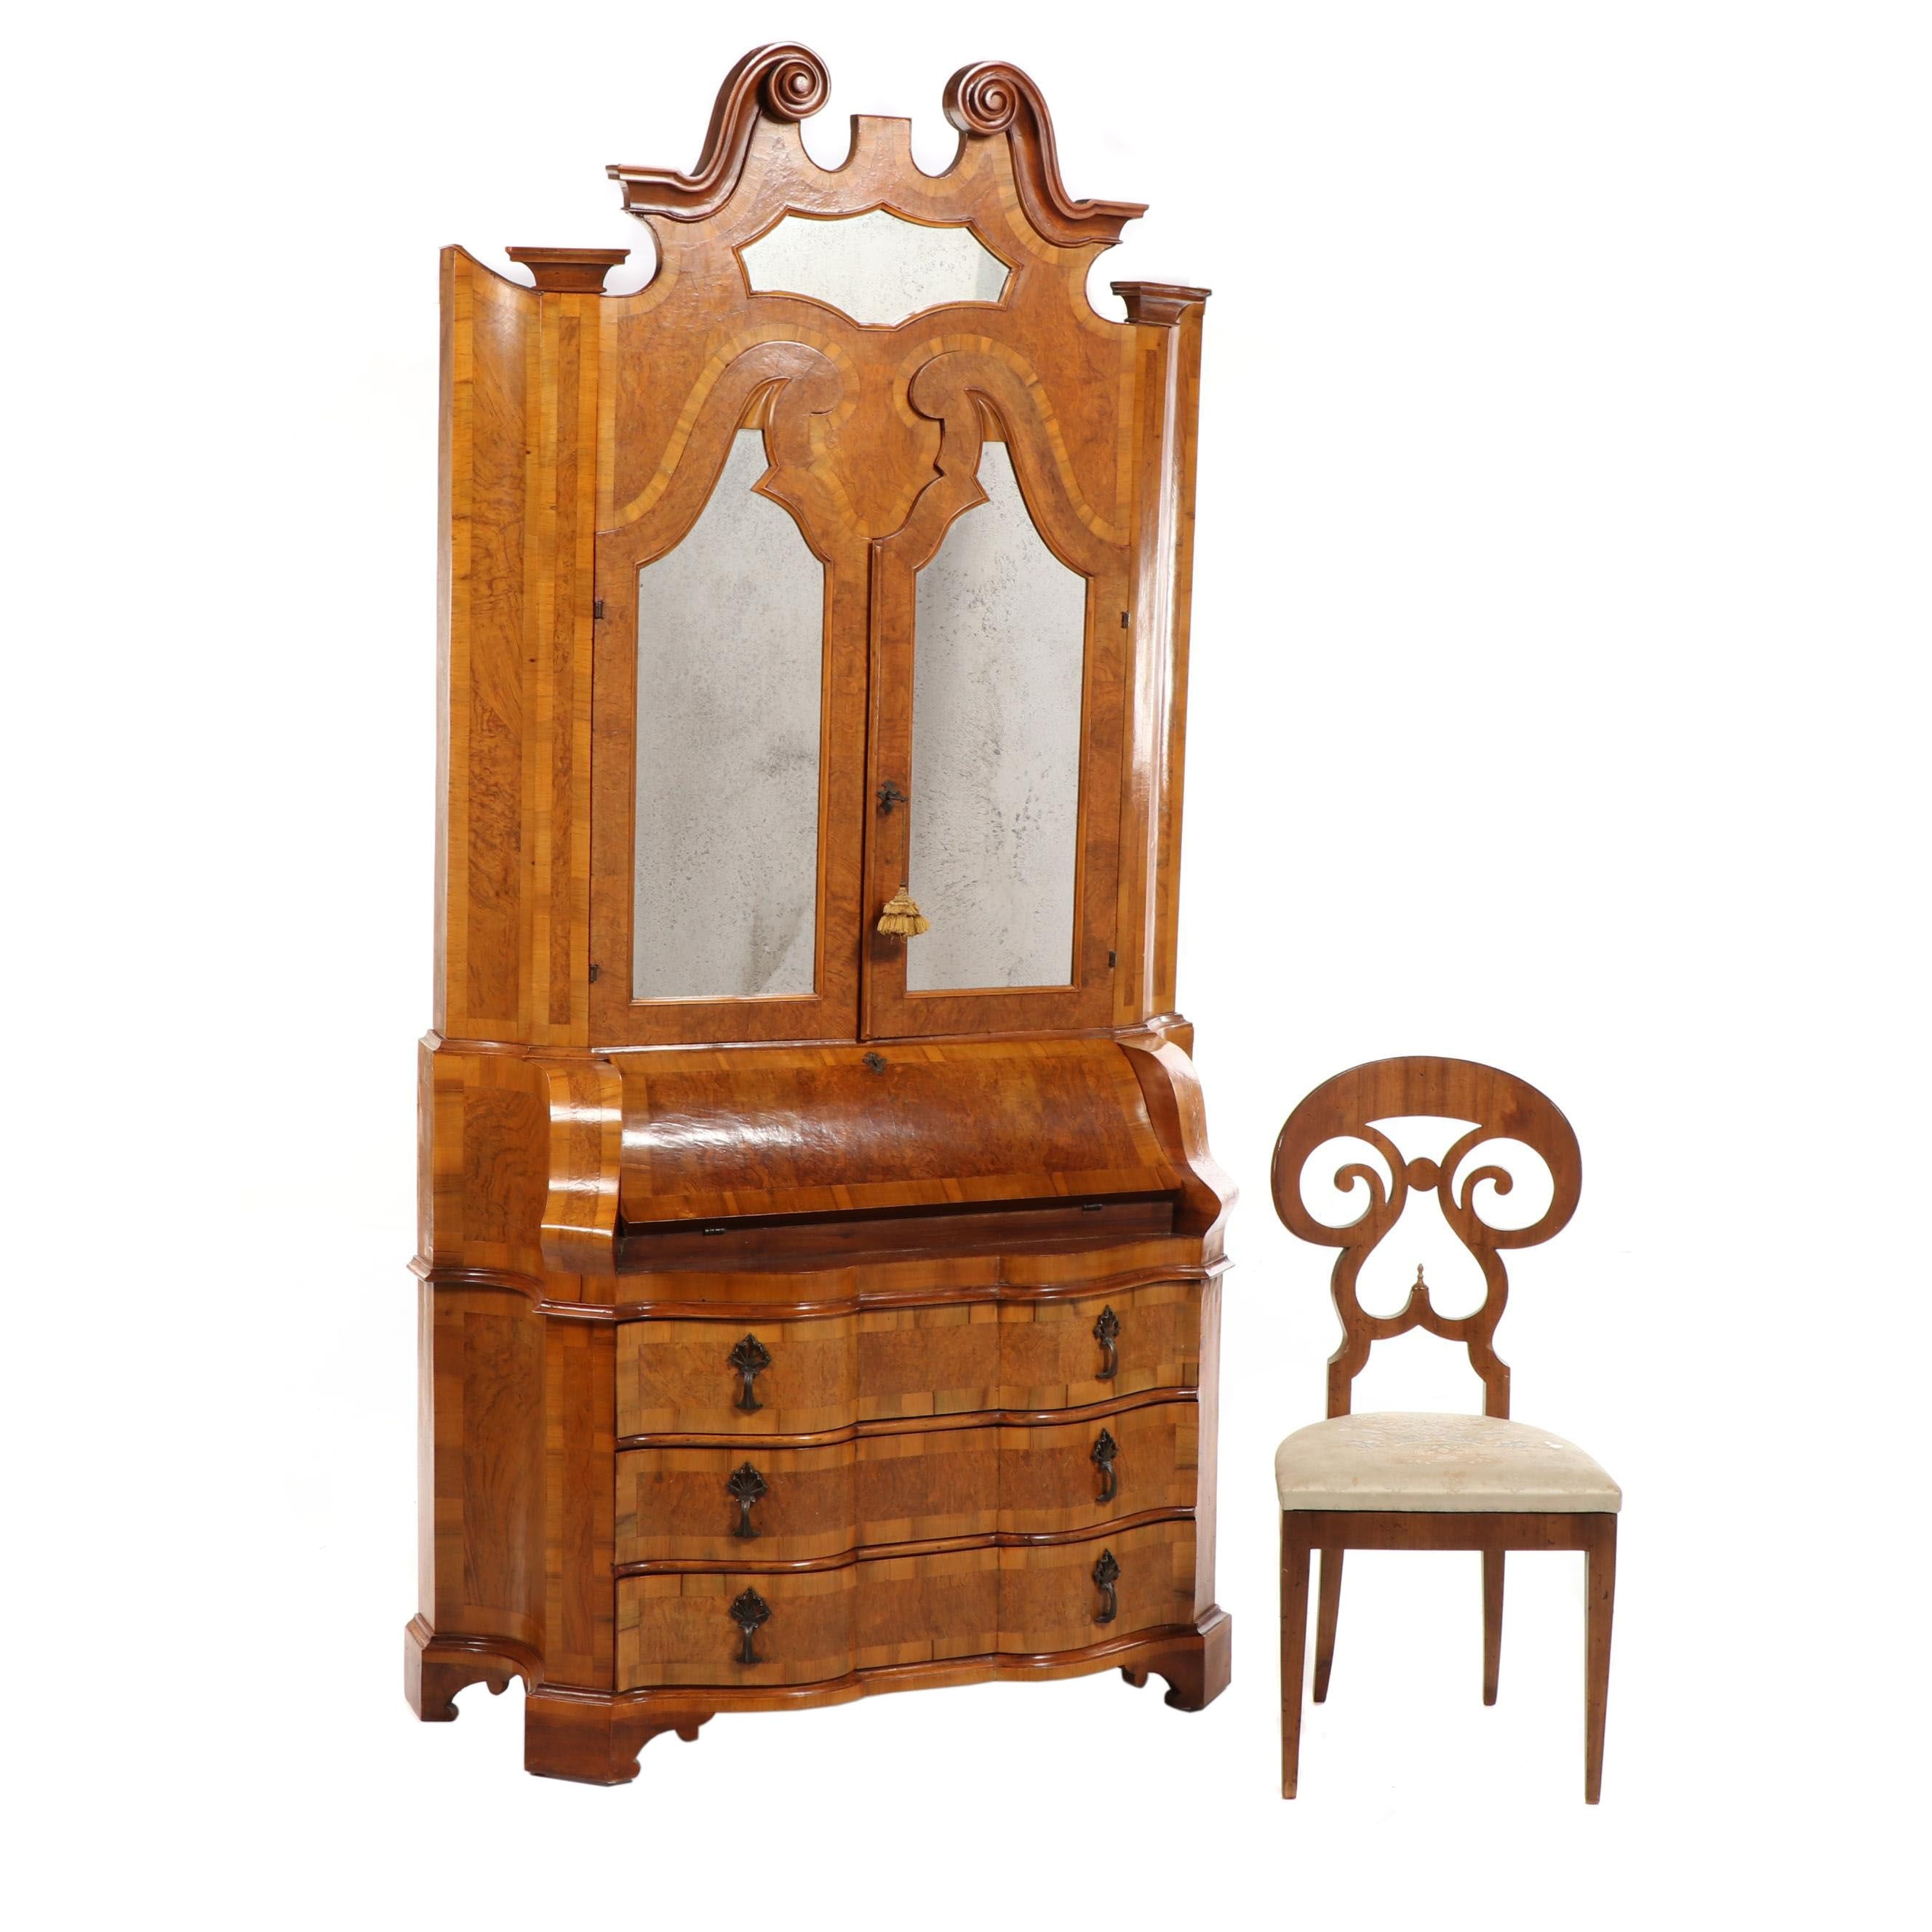 Biedermeier Style Burl Wood Secretary Cabinet and Side Chair, 19th Century